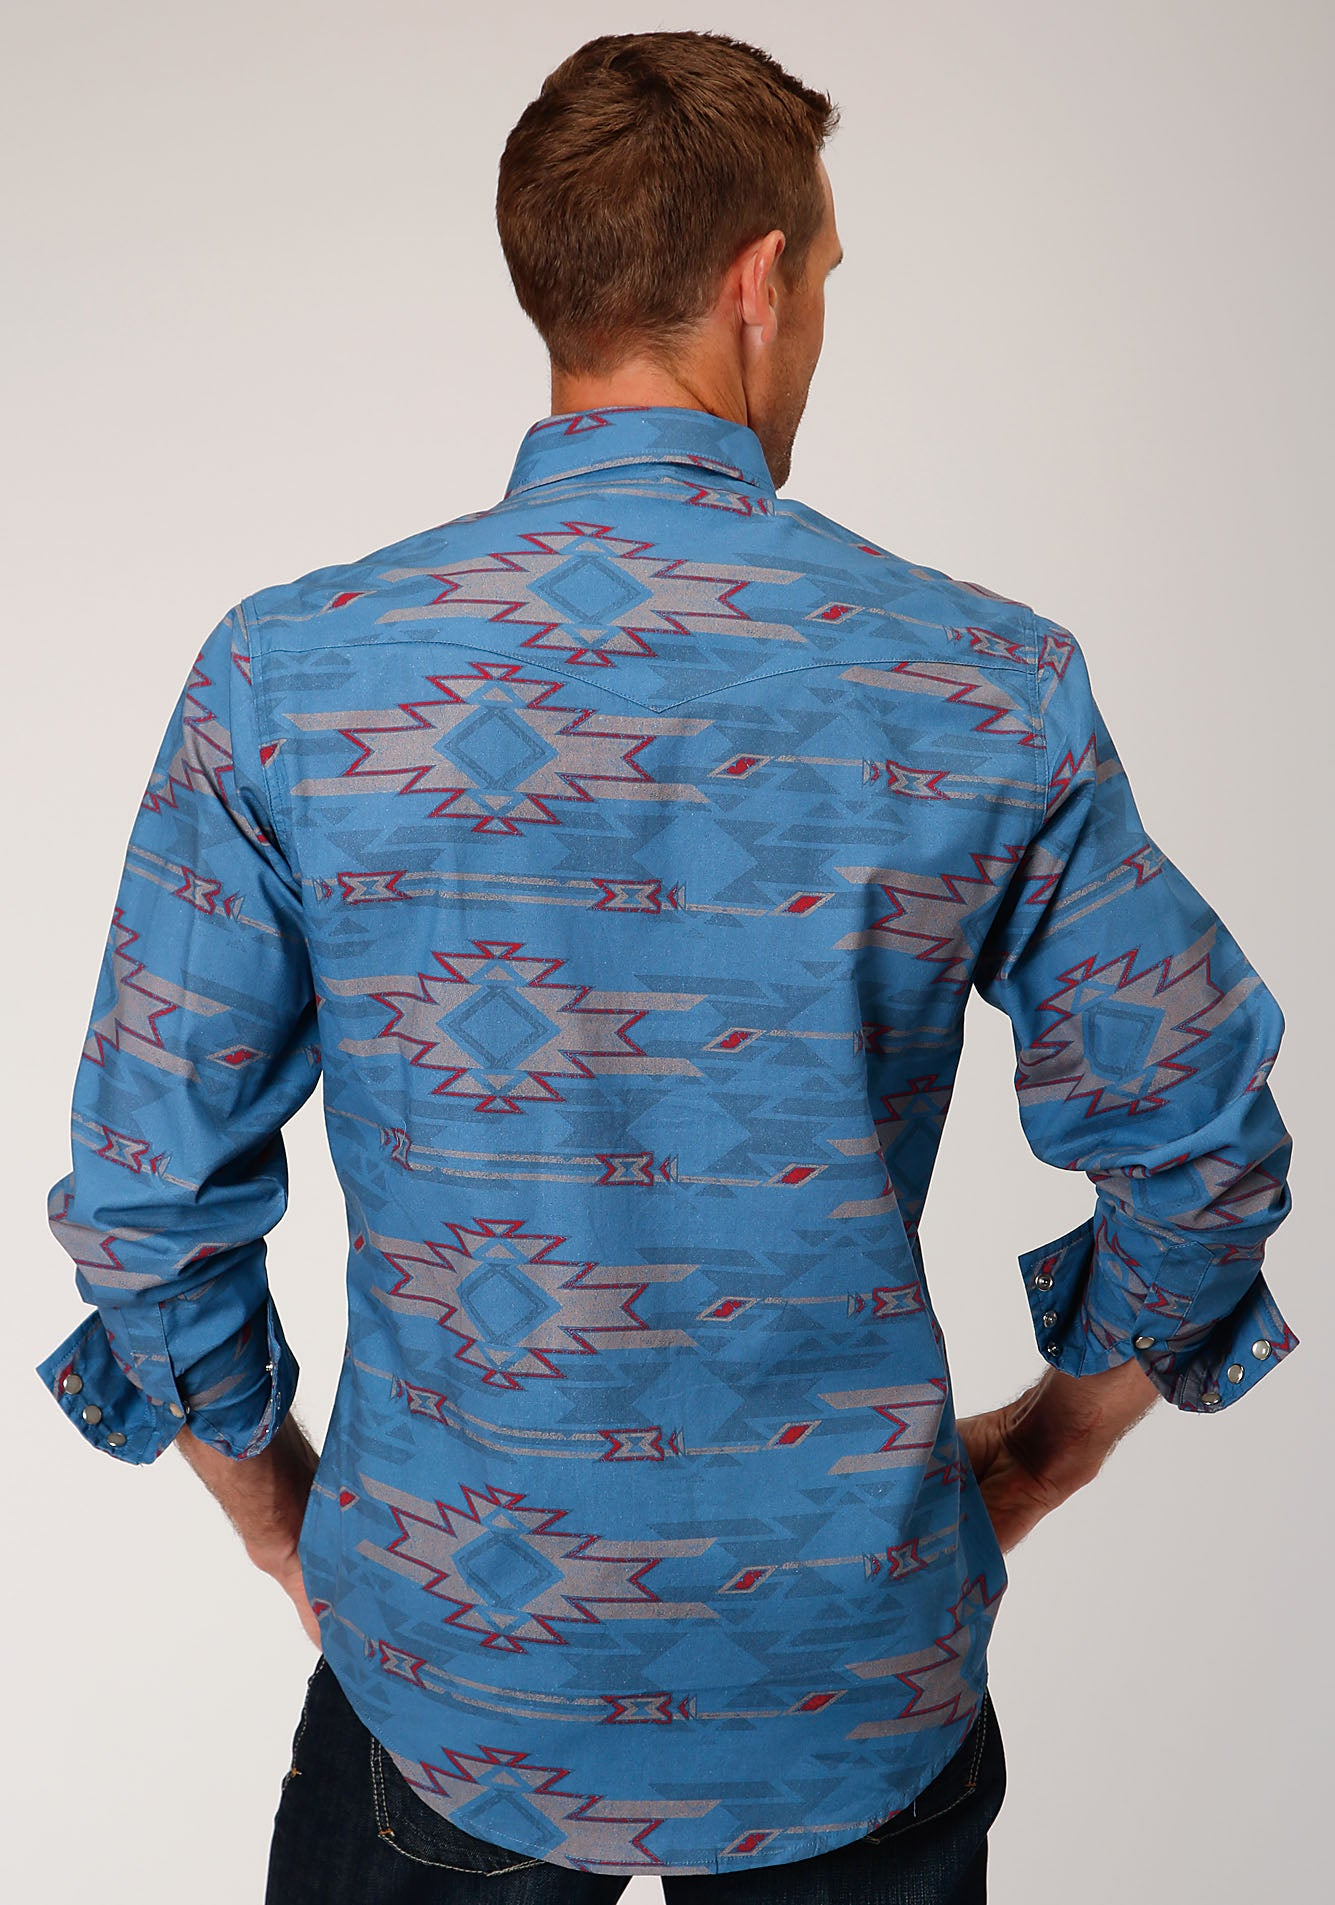 ROPER MENS BLUE 00077 SANDSTORM AZTEC WEST MADE COLLECTION LONG SLEEVE